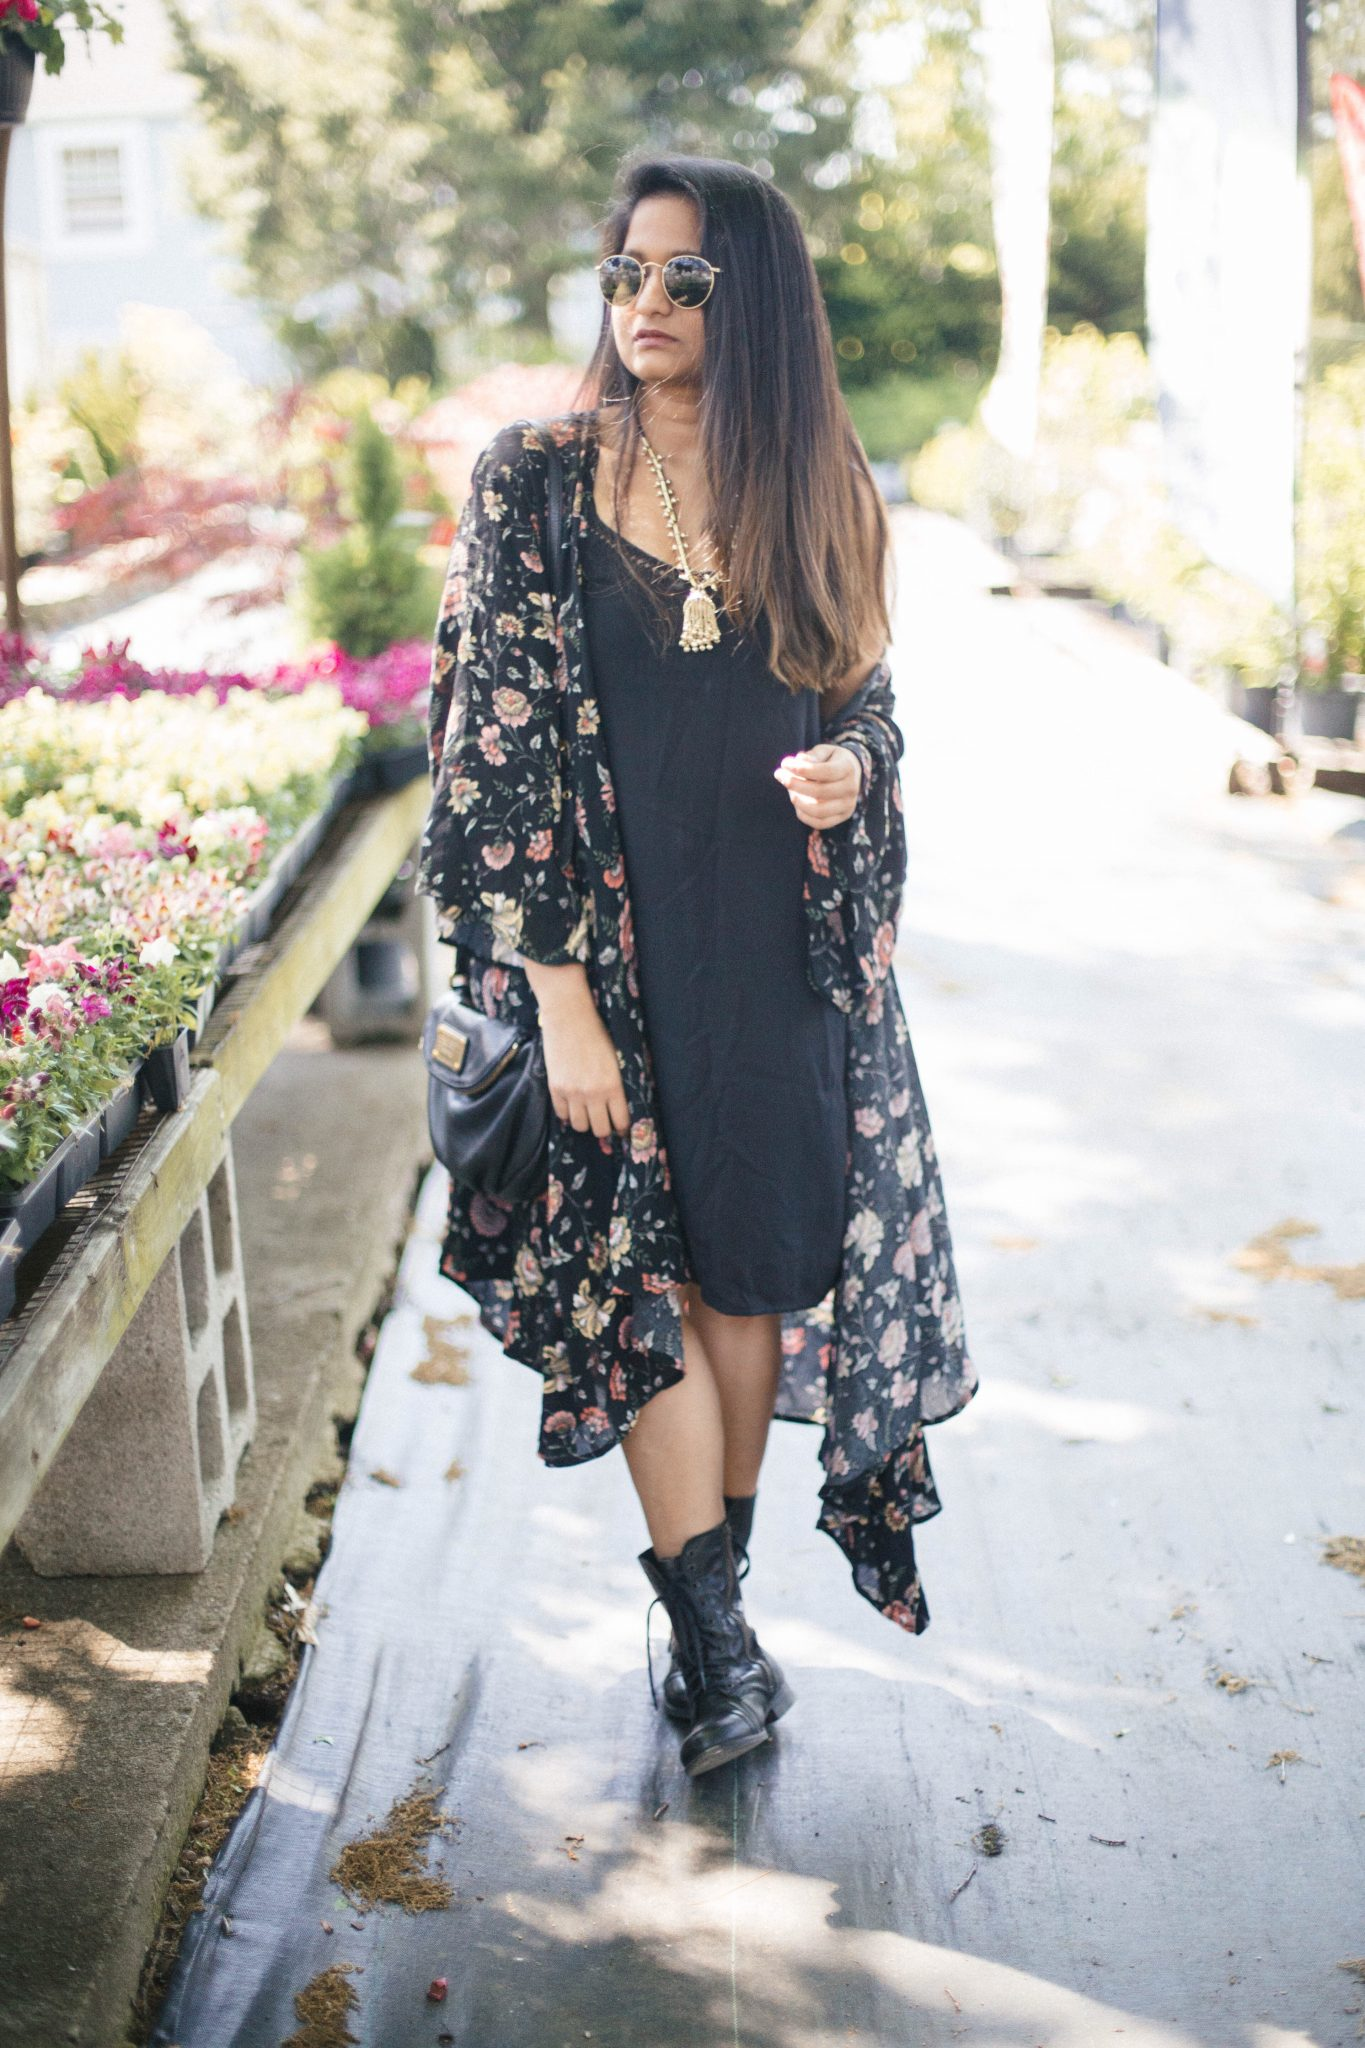 Merona-floral-kimono - Must Have Spring & Summer Lightweight Jackets featured by popular Ohio modest fashion blogger, Dreaming Loud | Lightweight Jackets by popular Maryland modest fashion blog, Dreaming Loud: image of a woman wearing a black chiffon floral print kimono, black dress, black utility boots, sunglasses, and black purse.